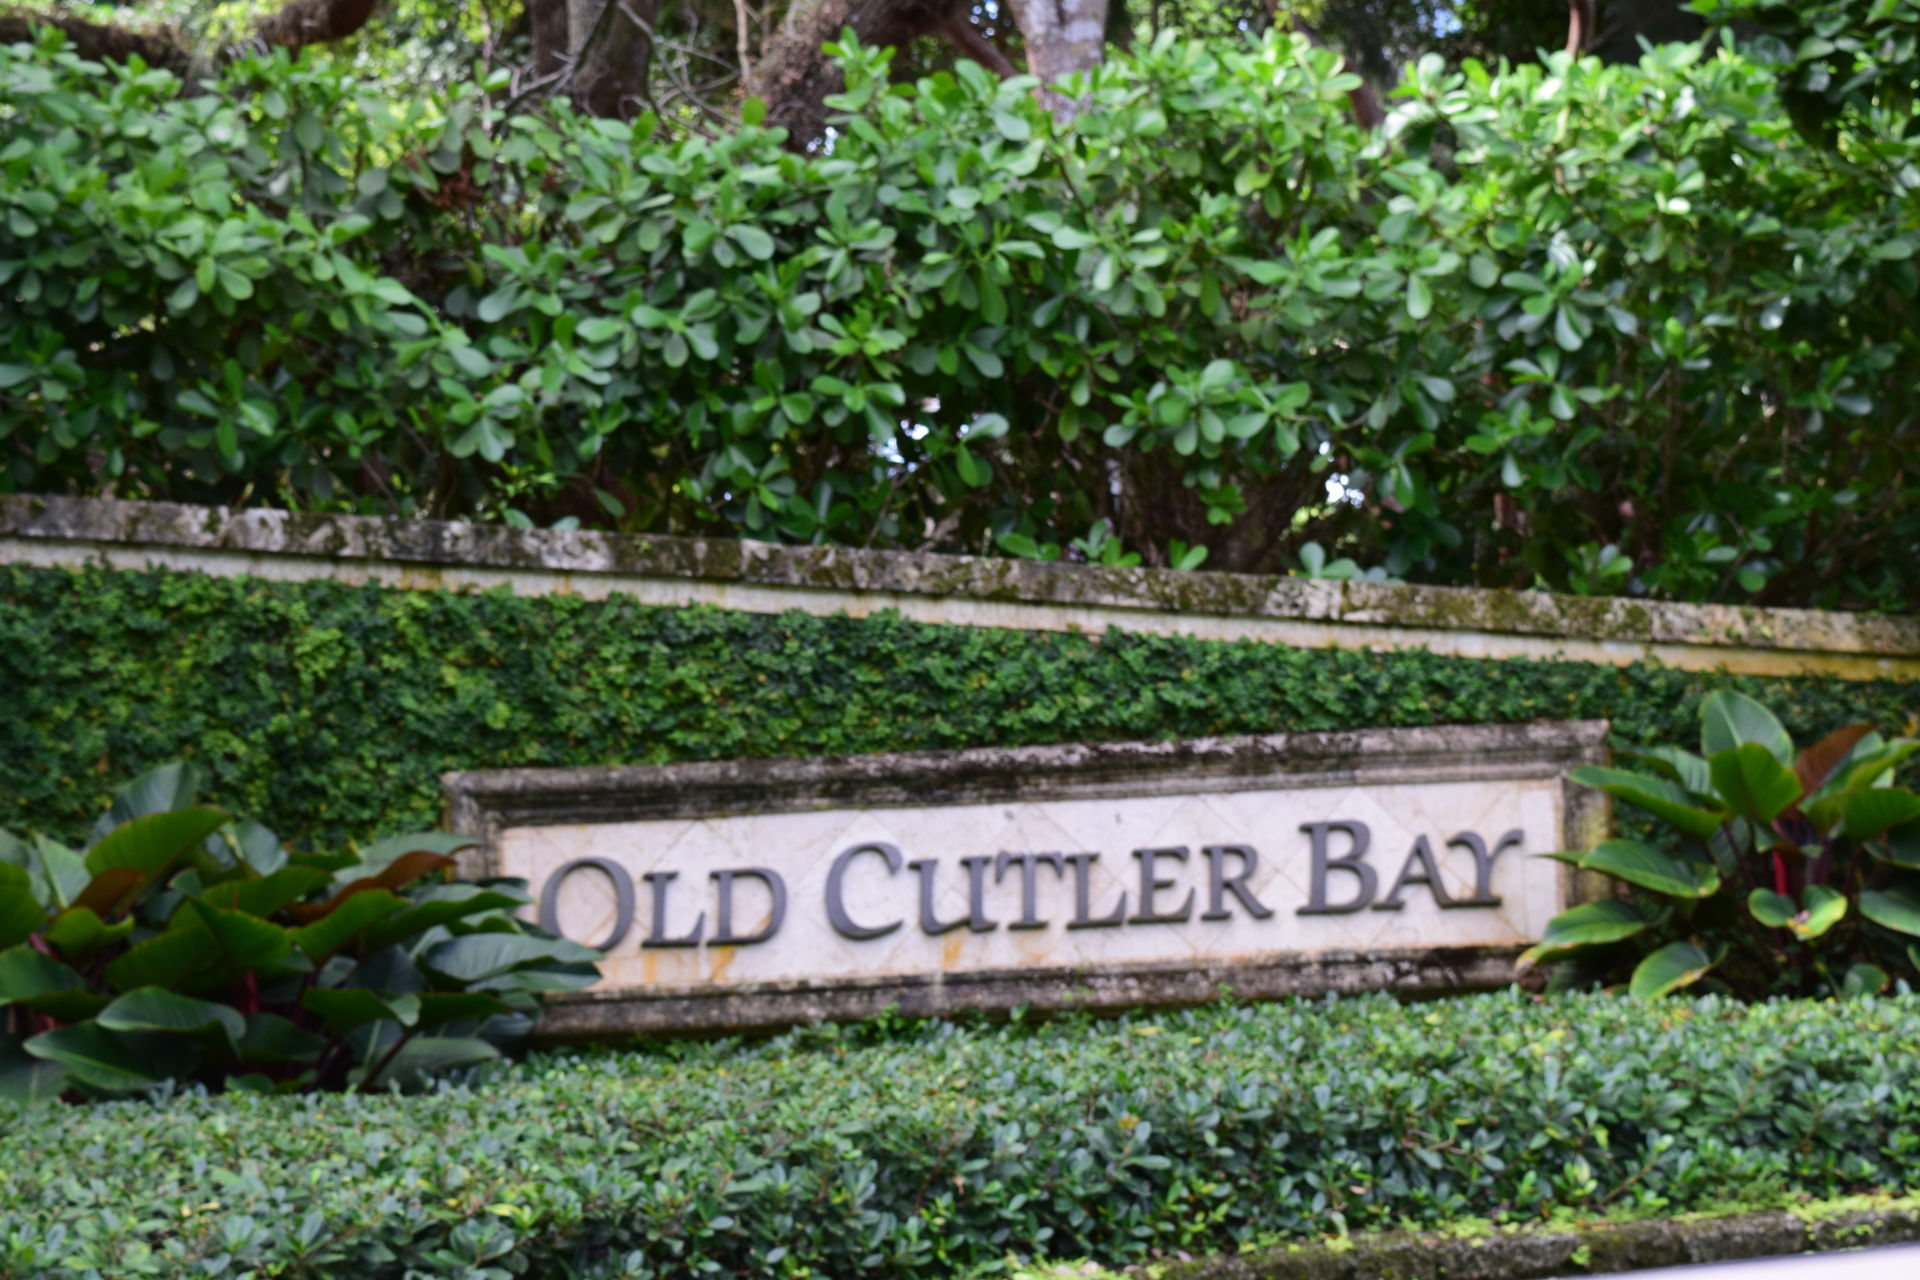 Old Cutler Bay sect 4 A